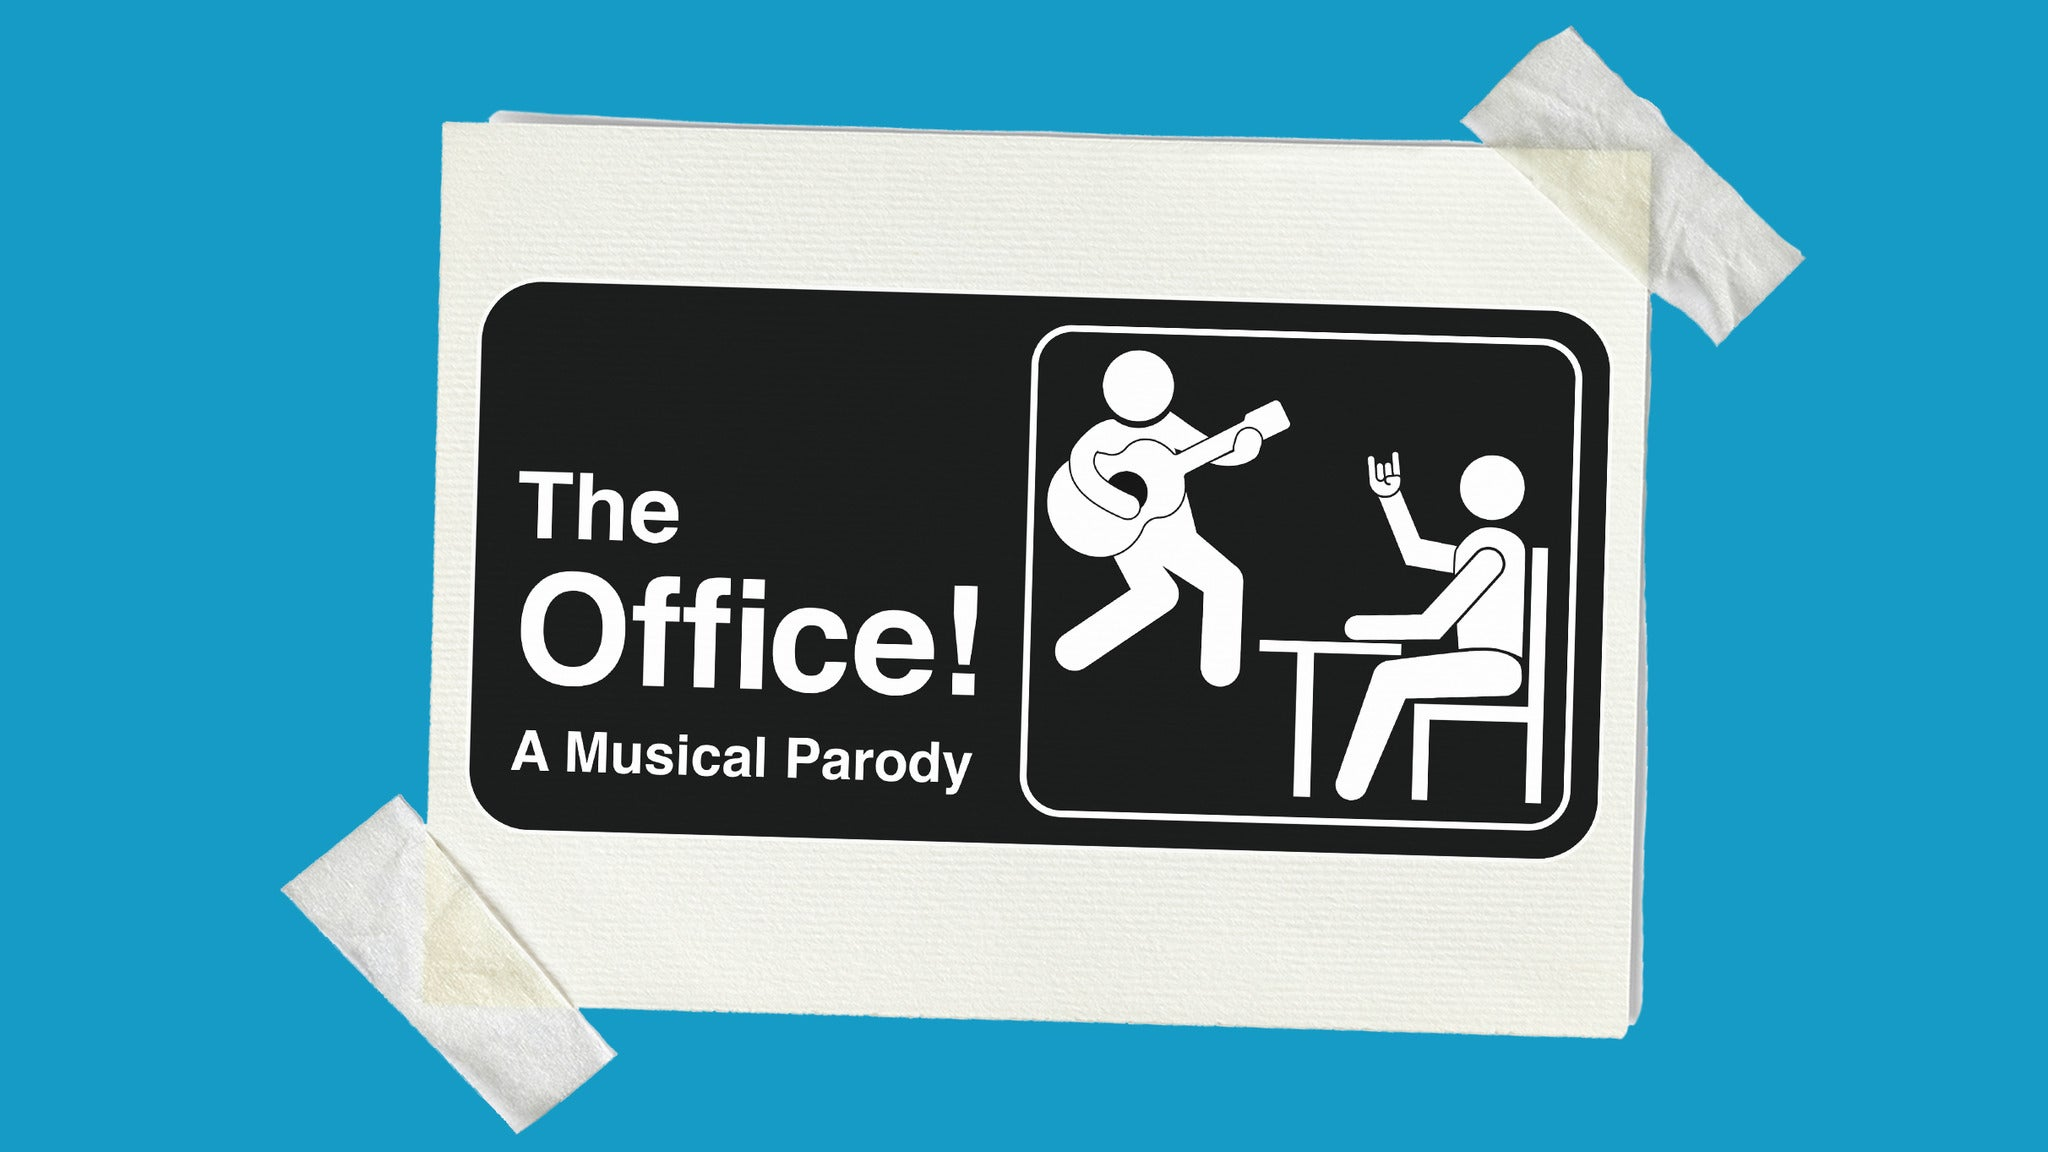 CIVIC ARTS PLAZA presents THE OFFICE: A MUSICAL PARODY